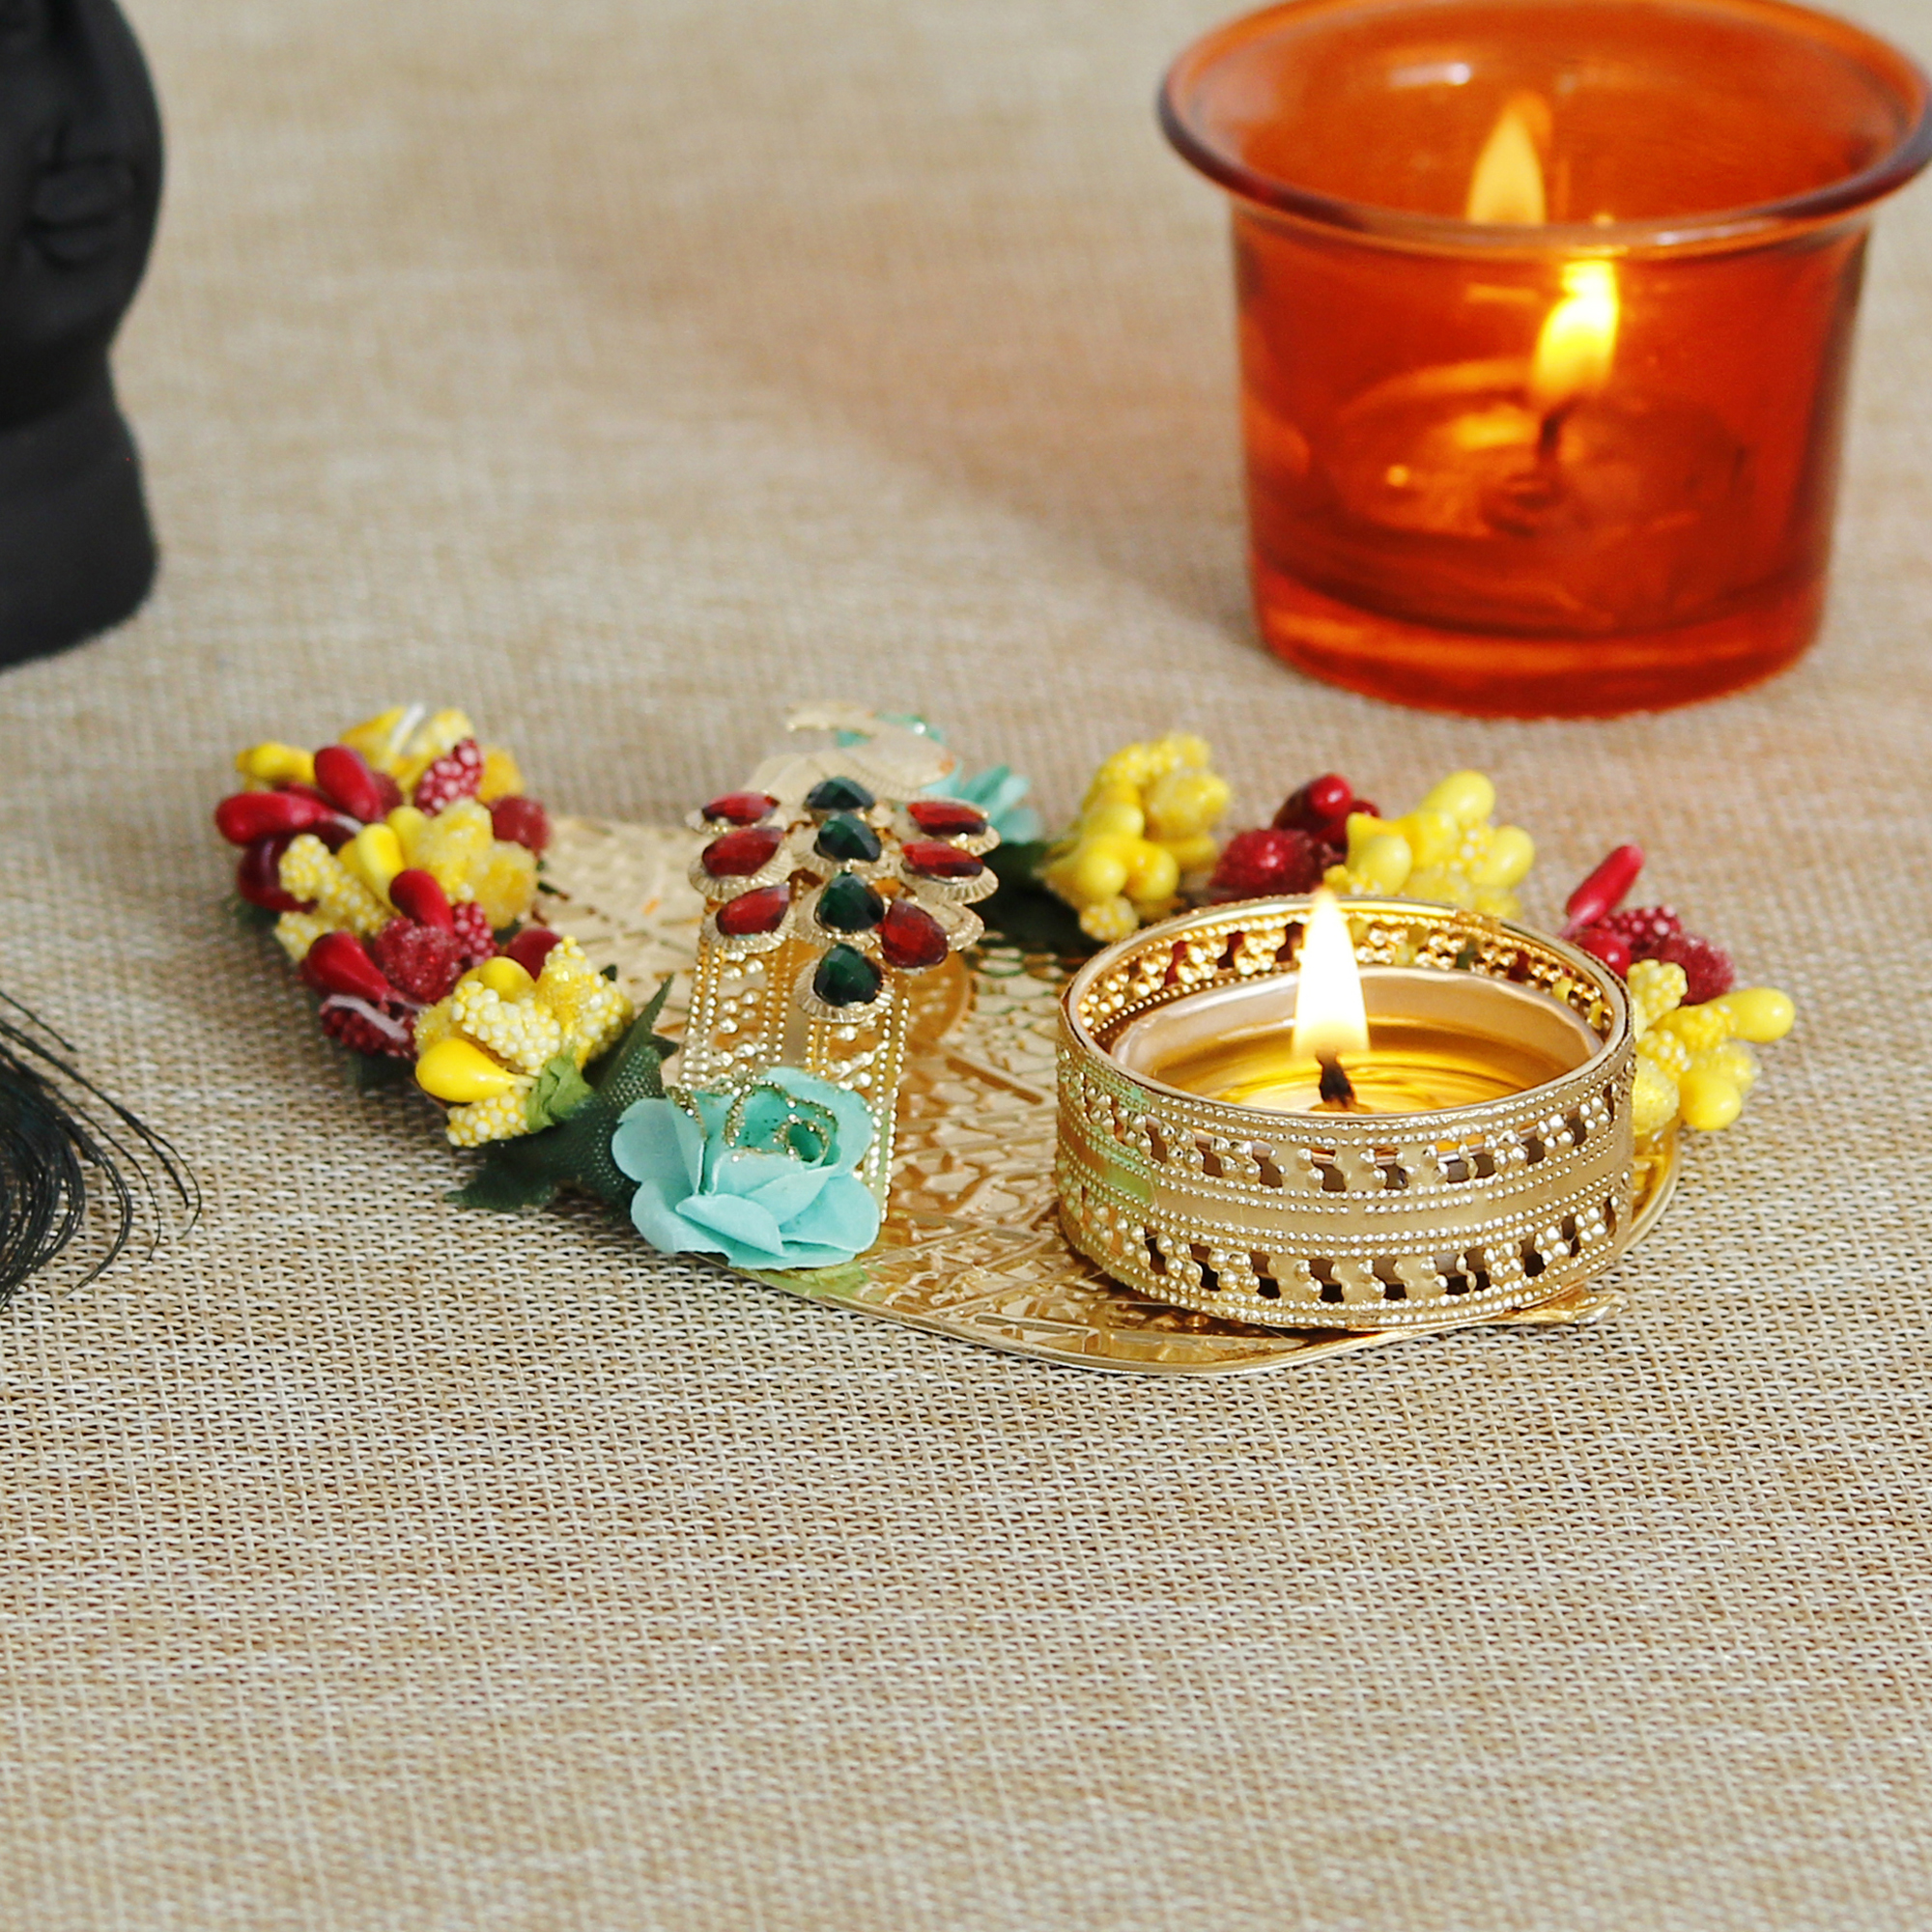 Decorative Handcrafted Yellow and Red Floral Leaf Shape Tea Light Holder Indian Home Decor